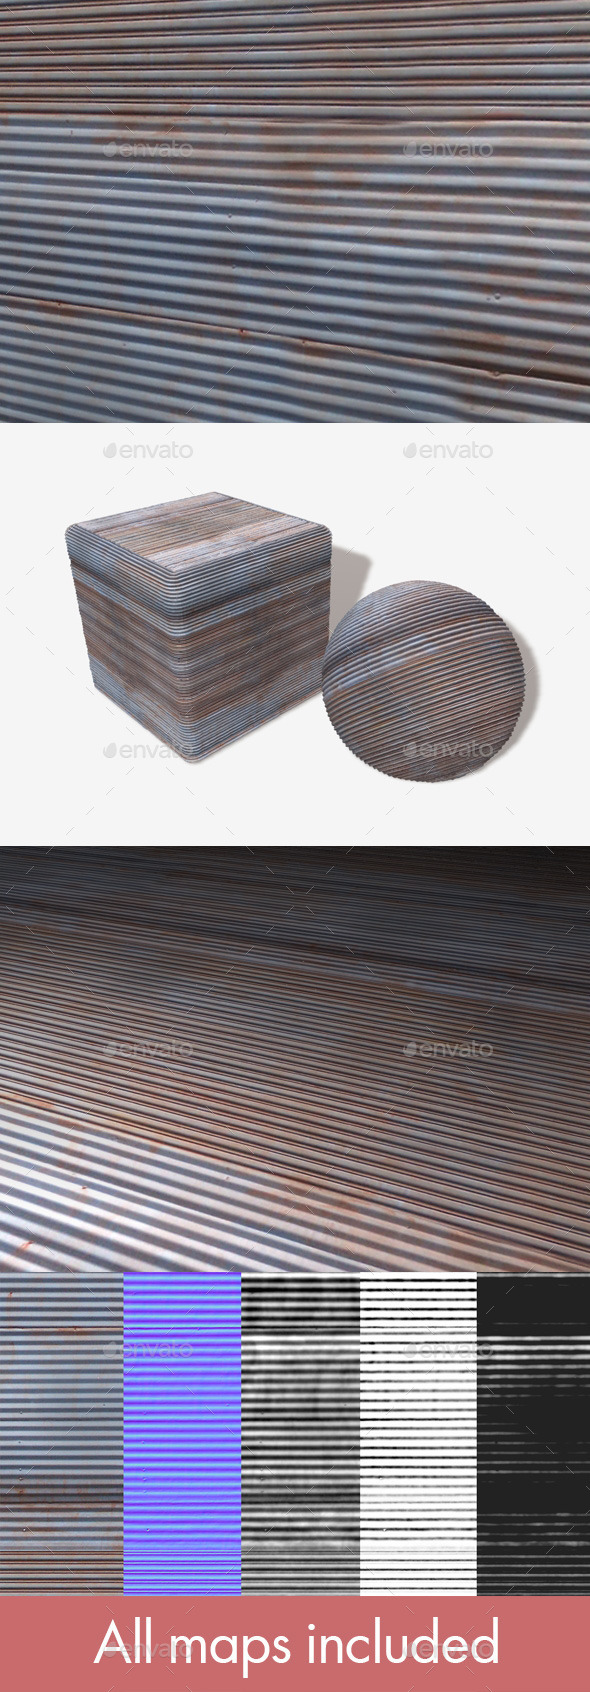 Corrugated Iron Seamless Texture - 3DOcean Item for Sale